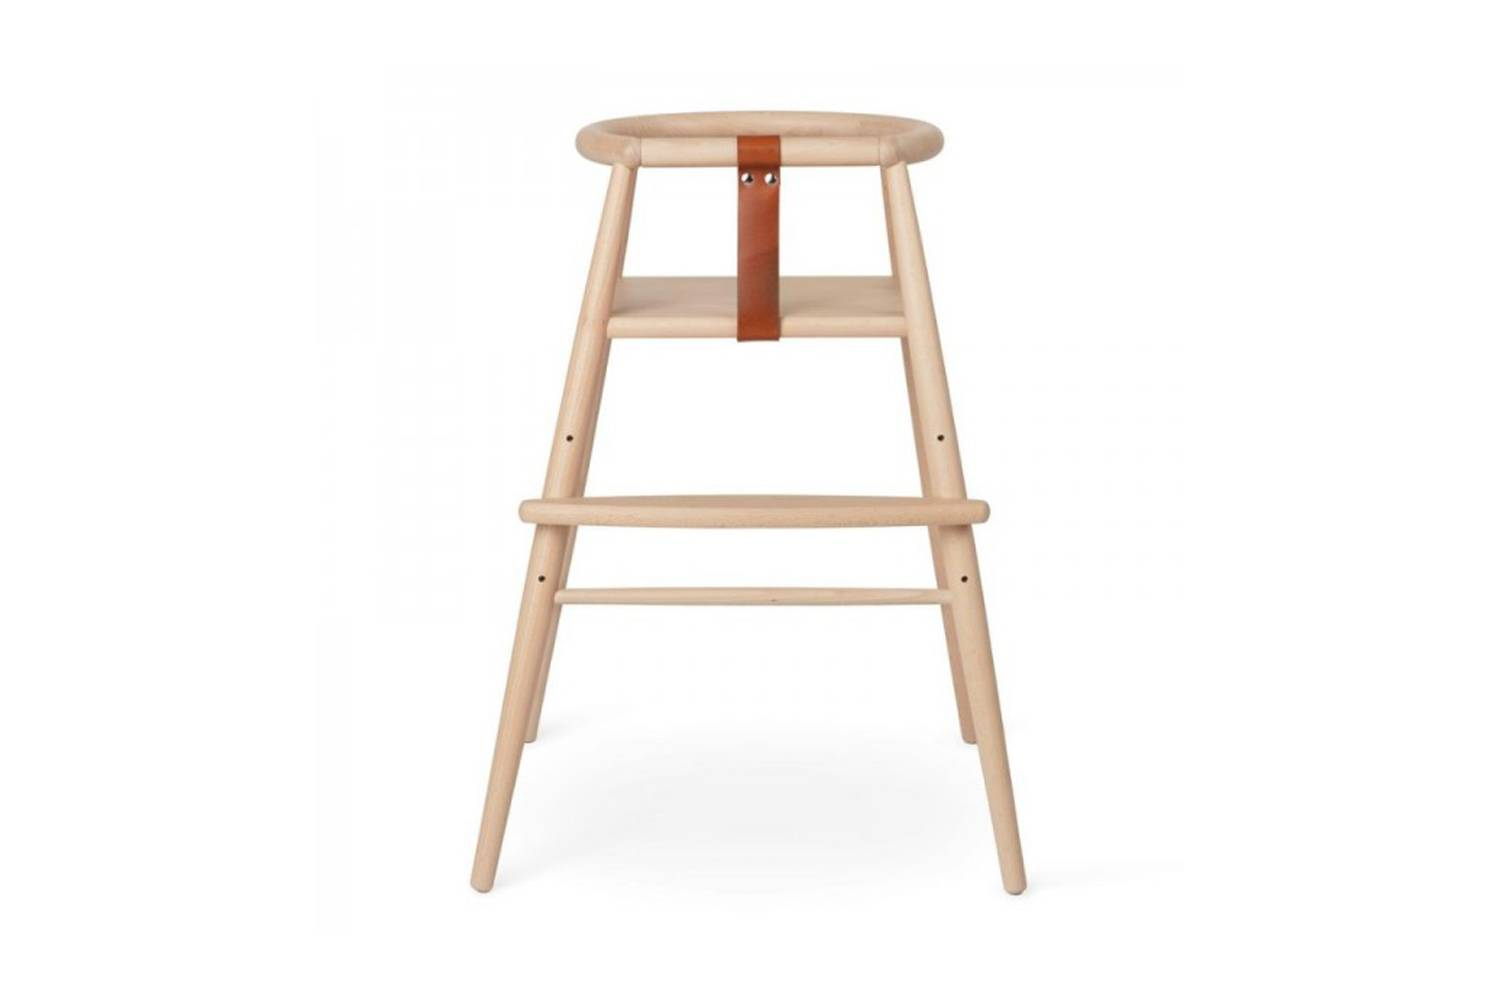 the nanna ditzel nd54 high chair was designed in \1955 and is now available thr 26